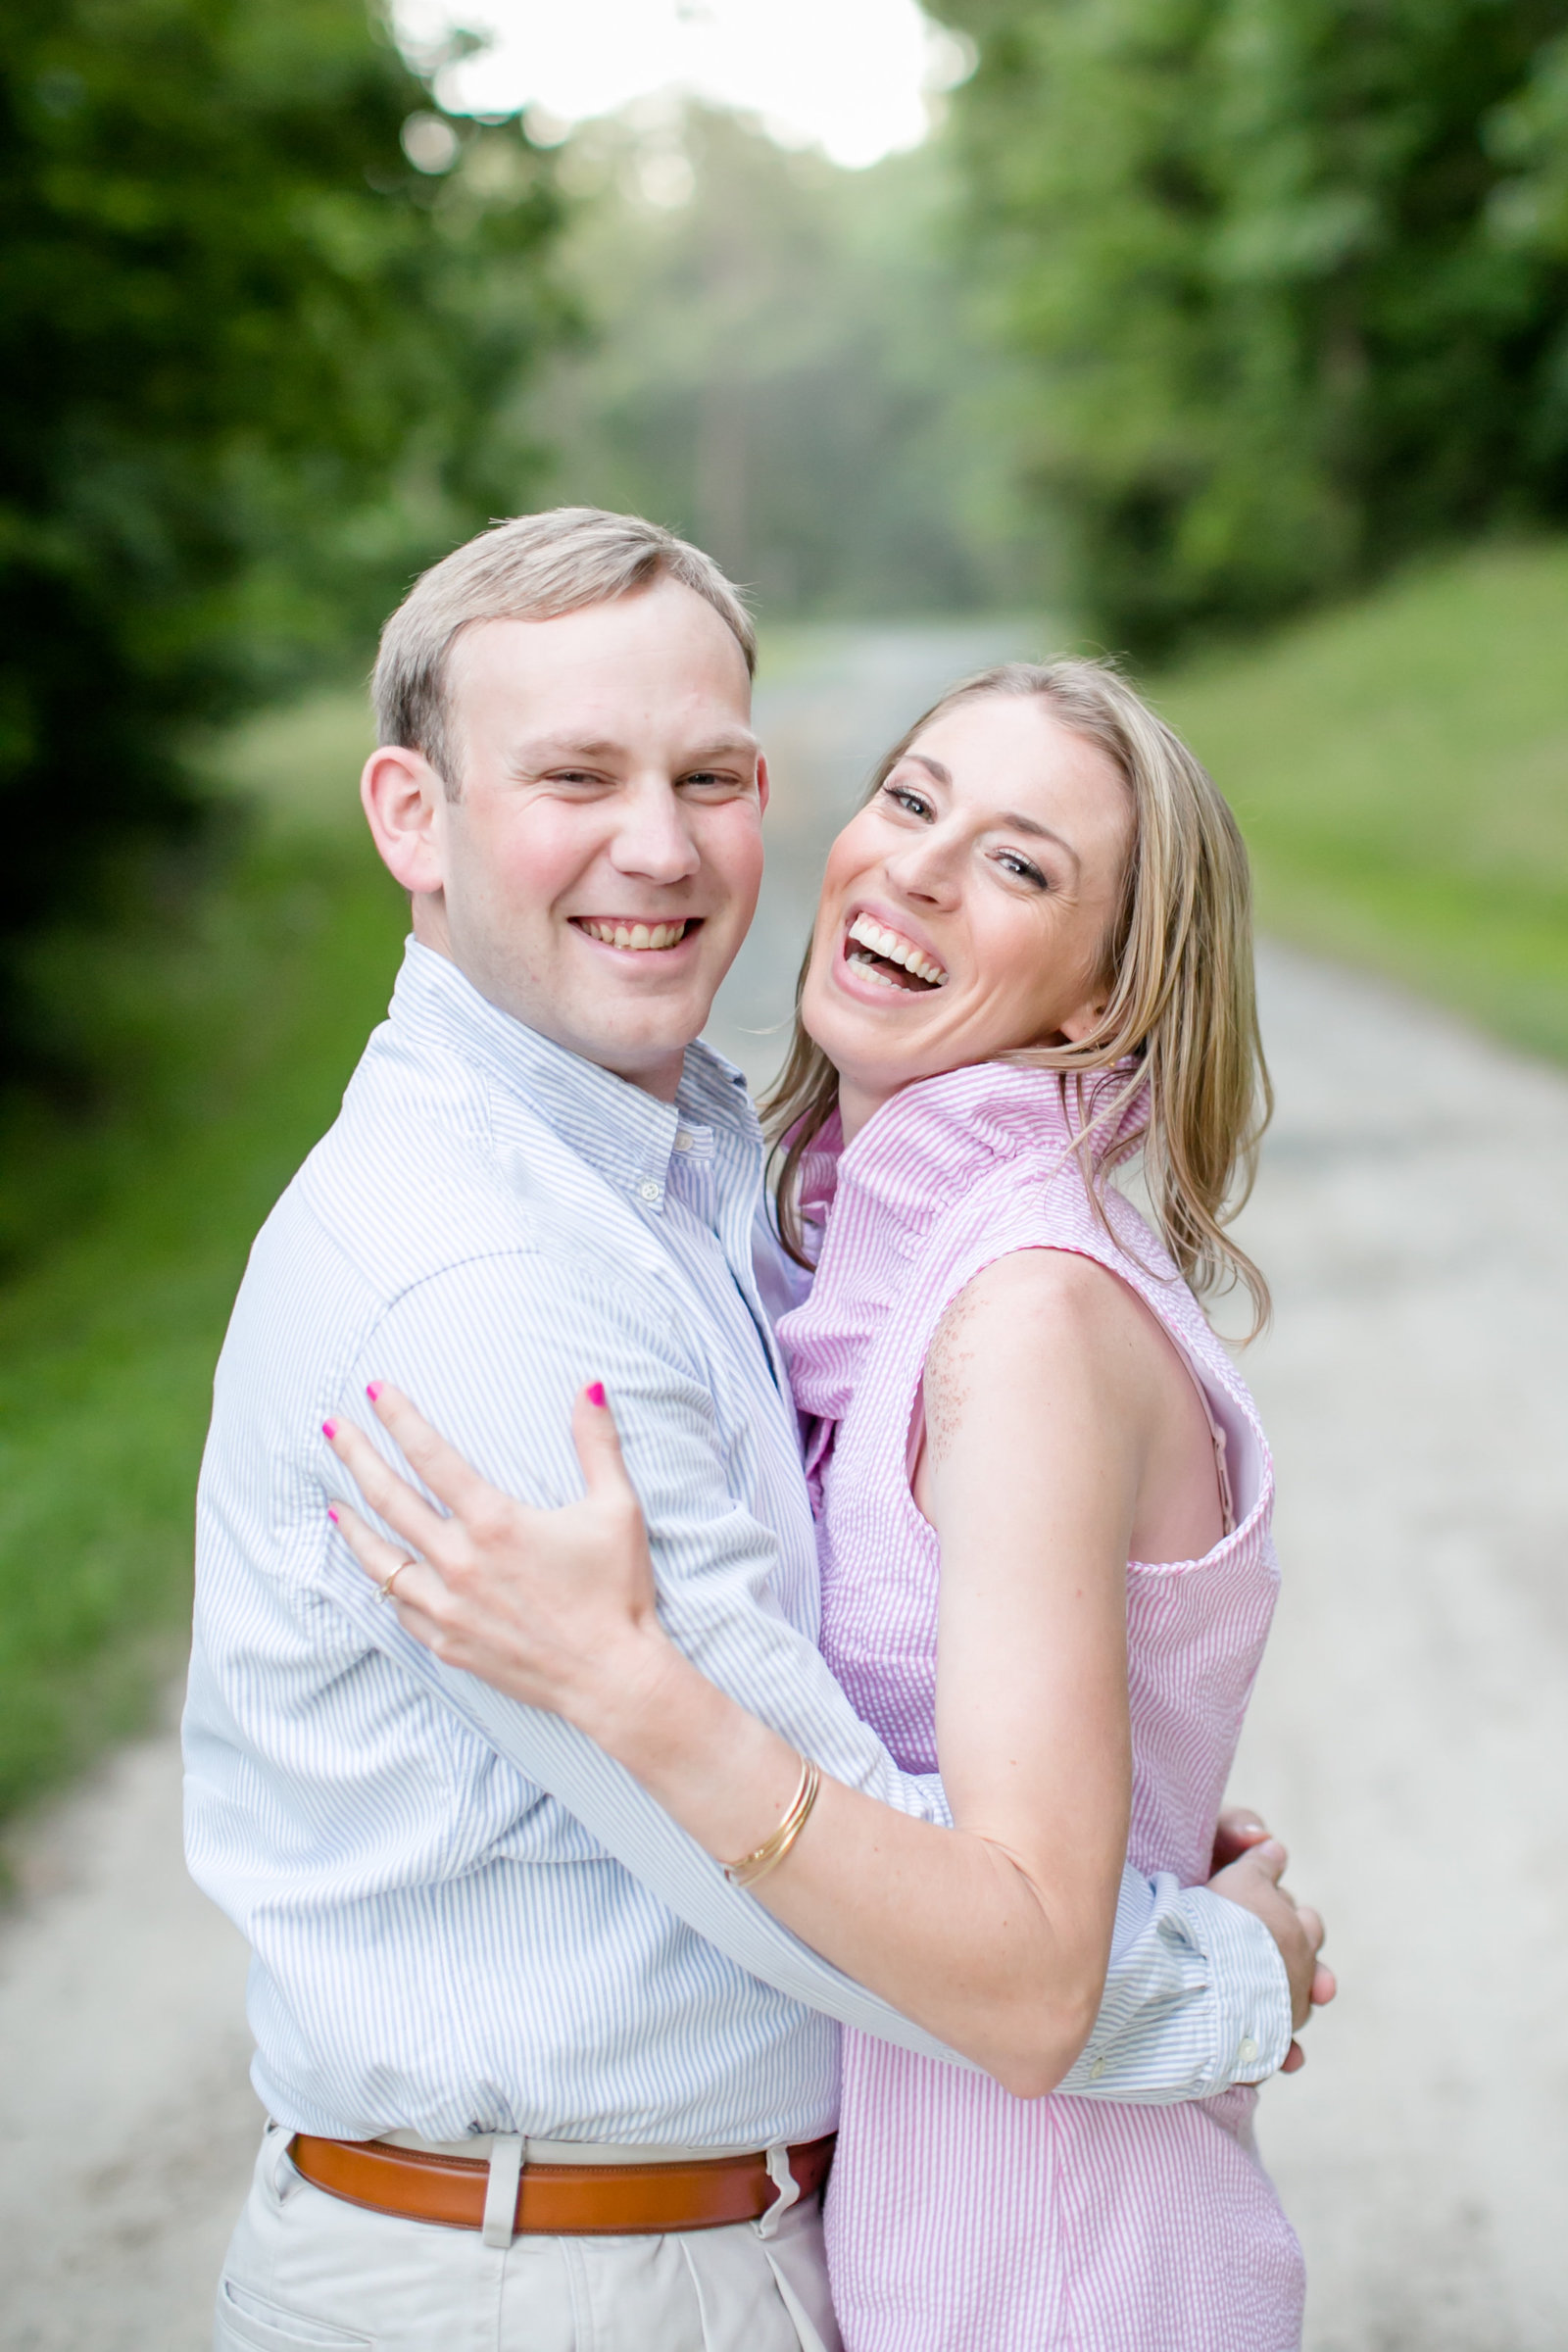 Carley Rehberg Photography - Engagement Photographer - Photo - 21